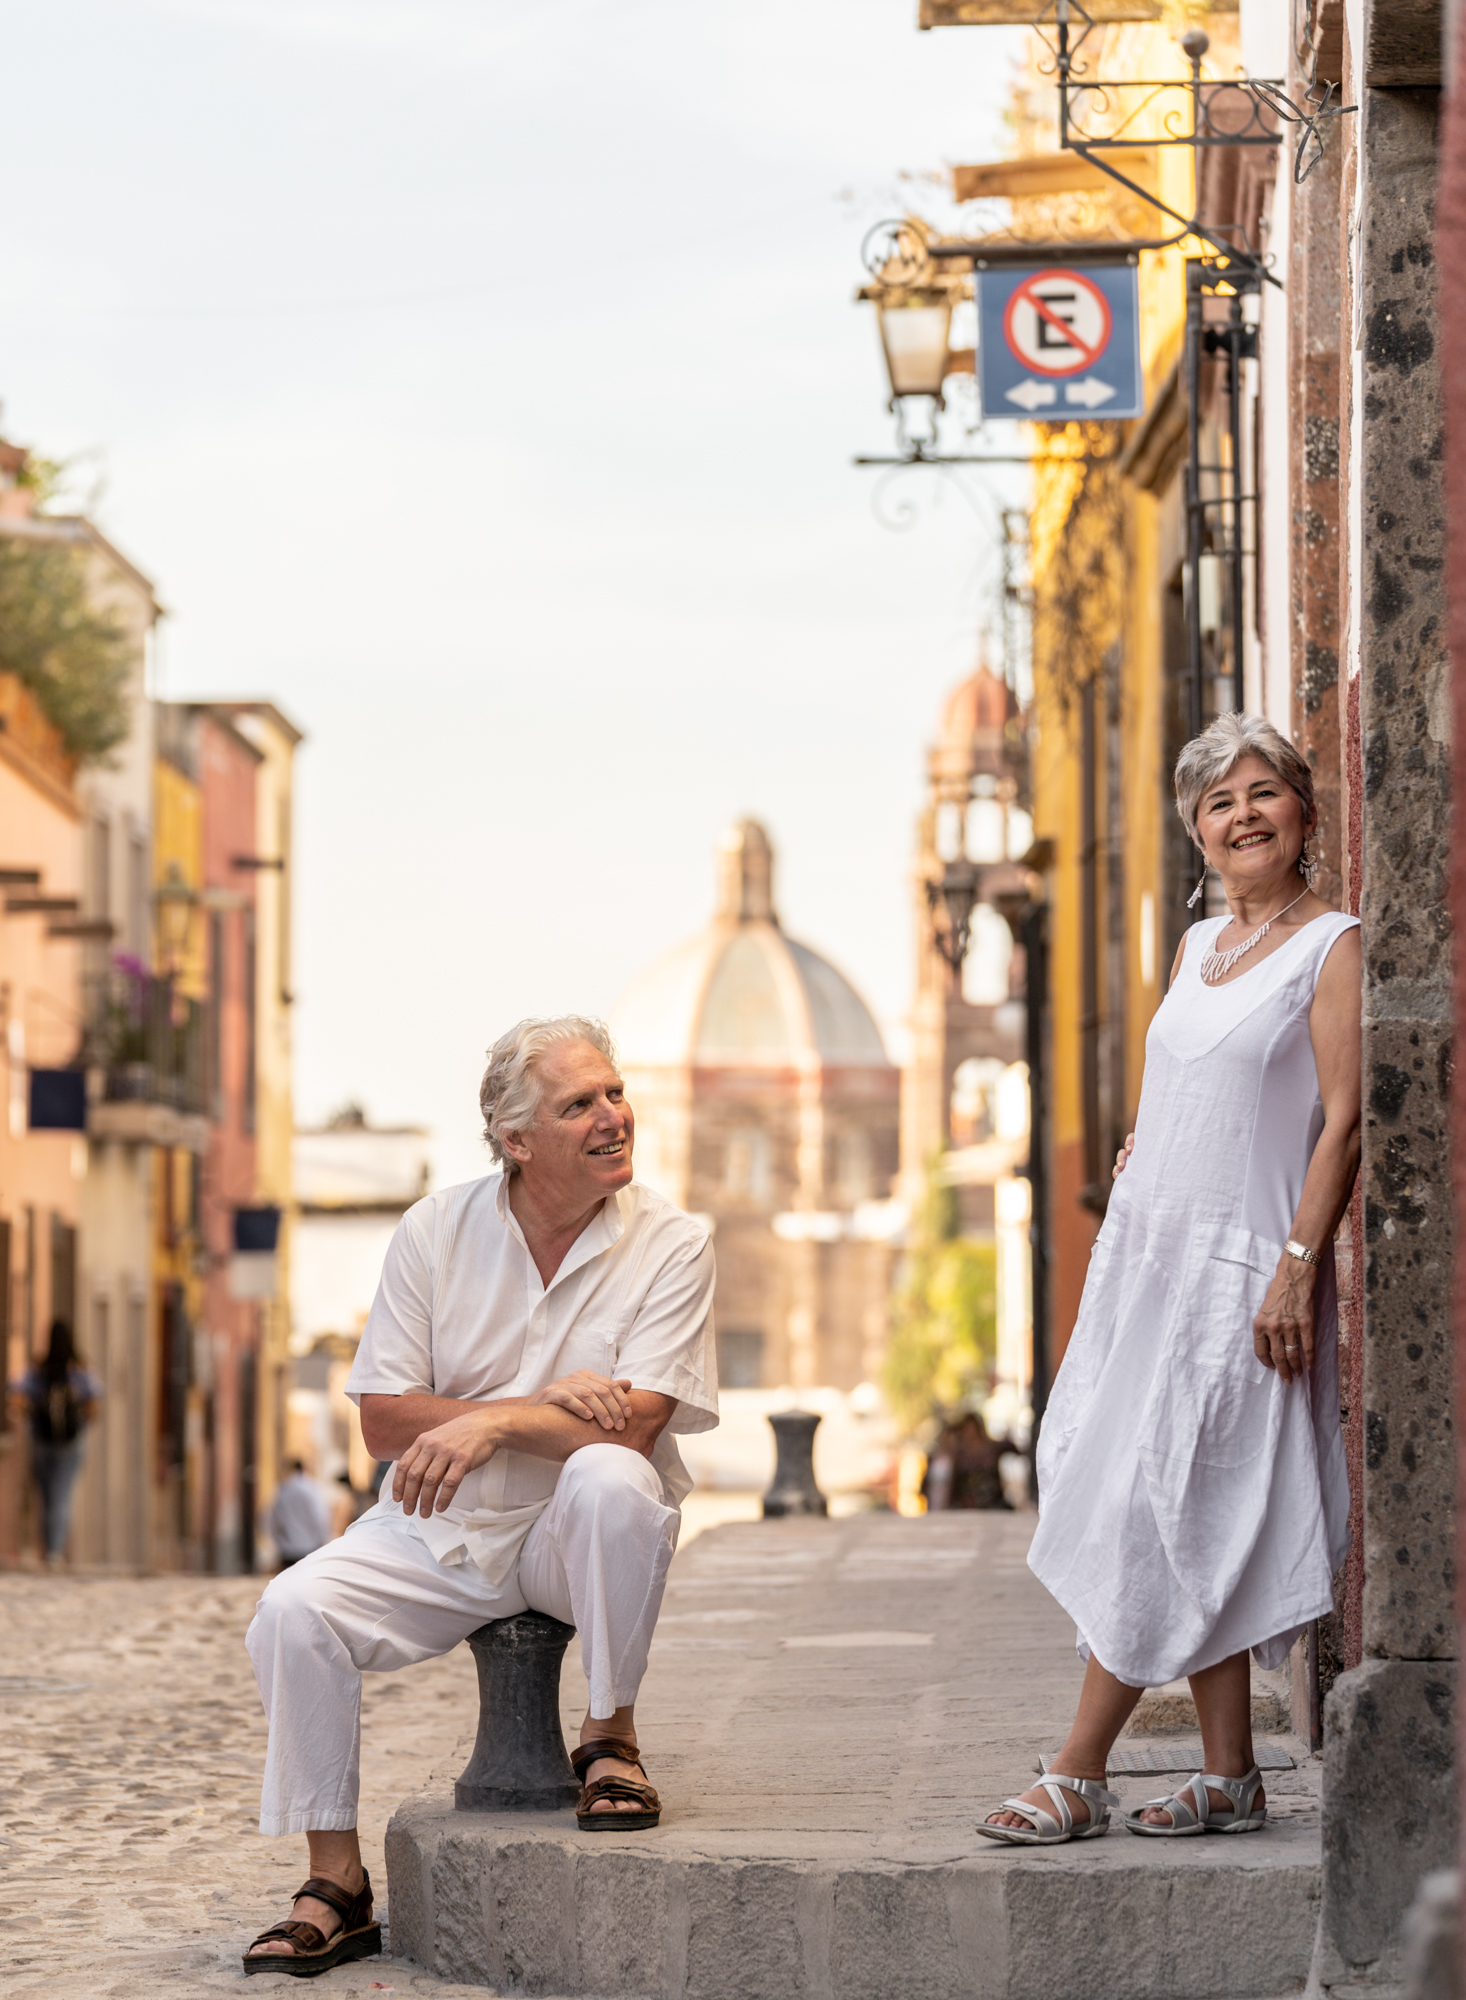 Photoshoot session in San Miguel de Allende with Suzanne and Leo-36.jpg